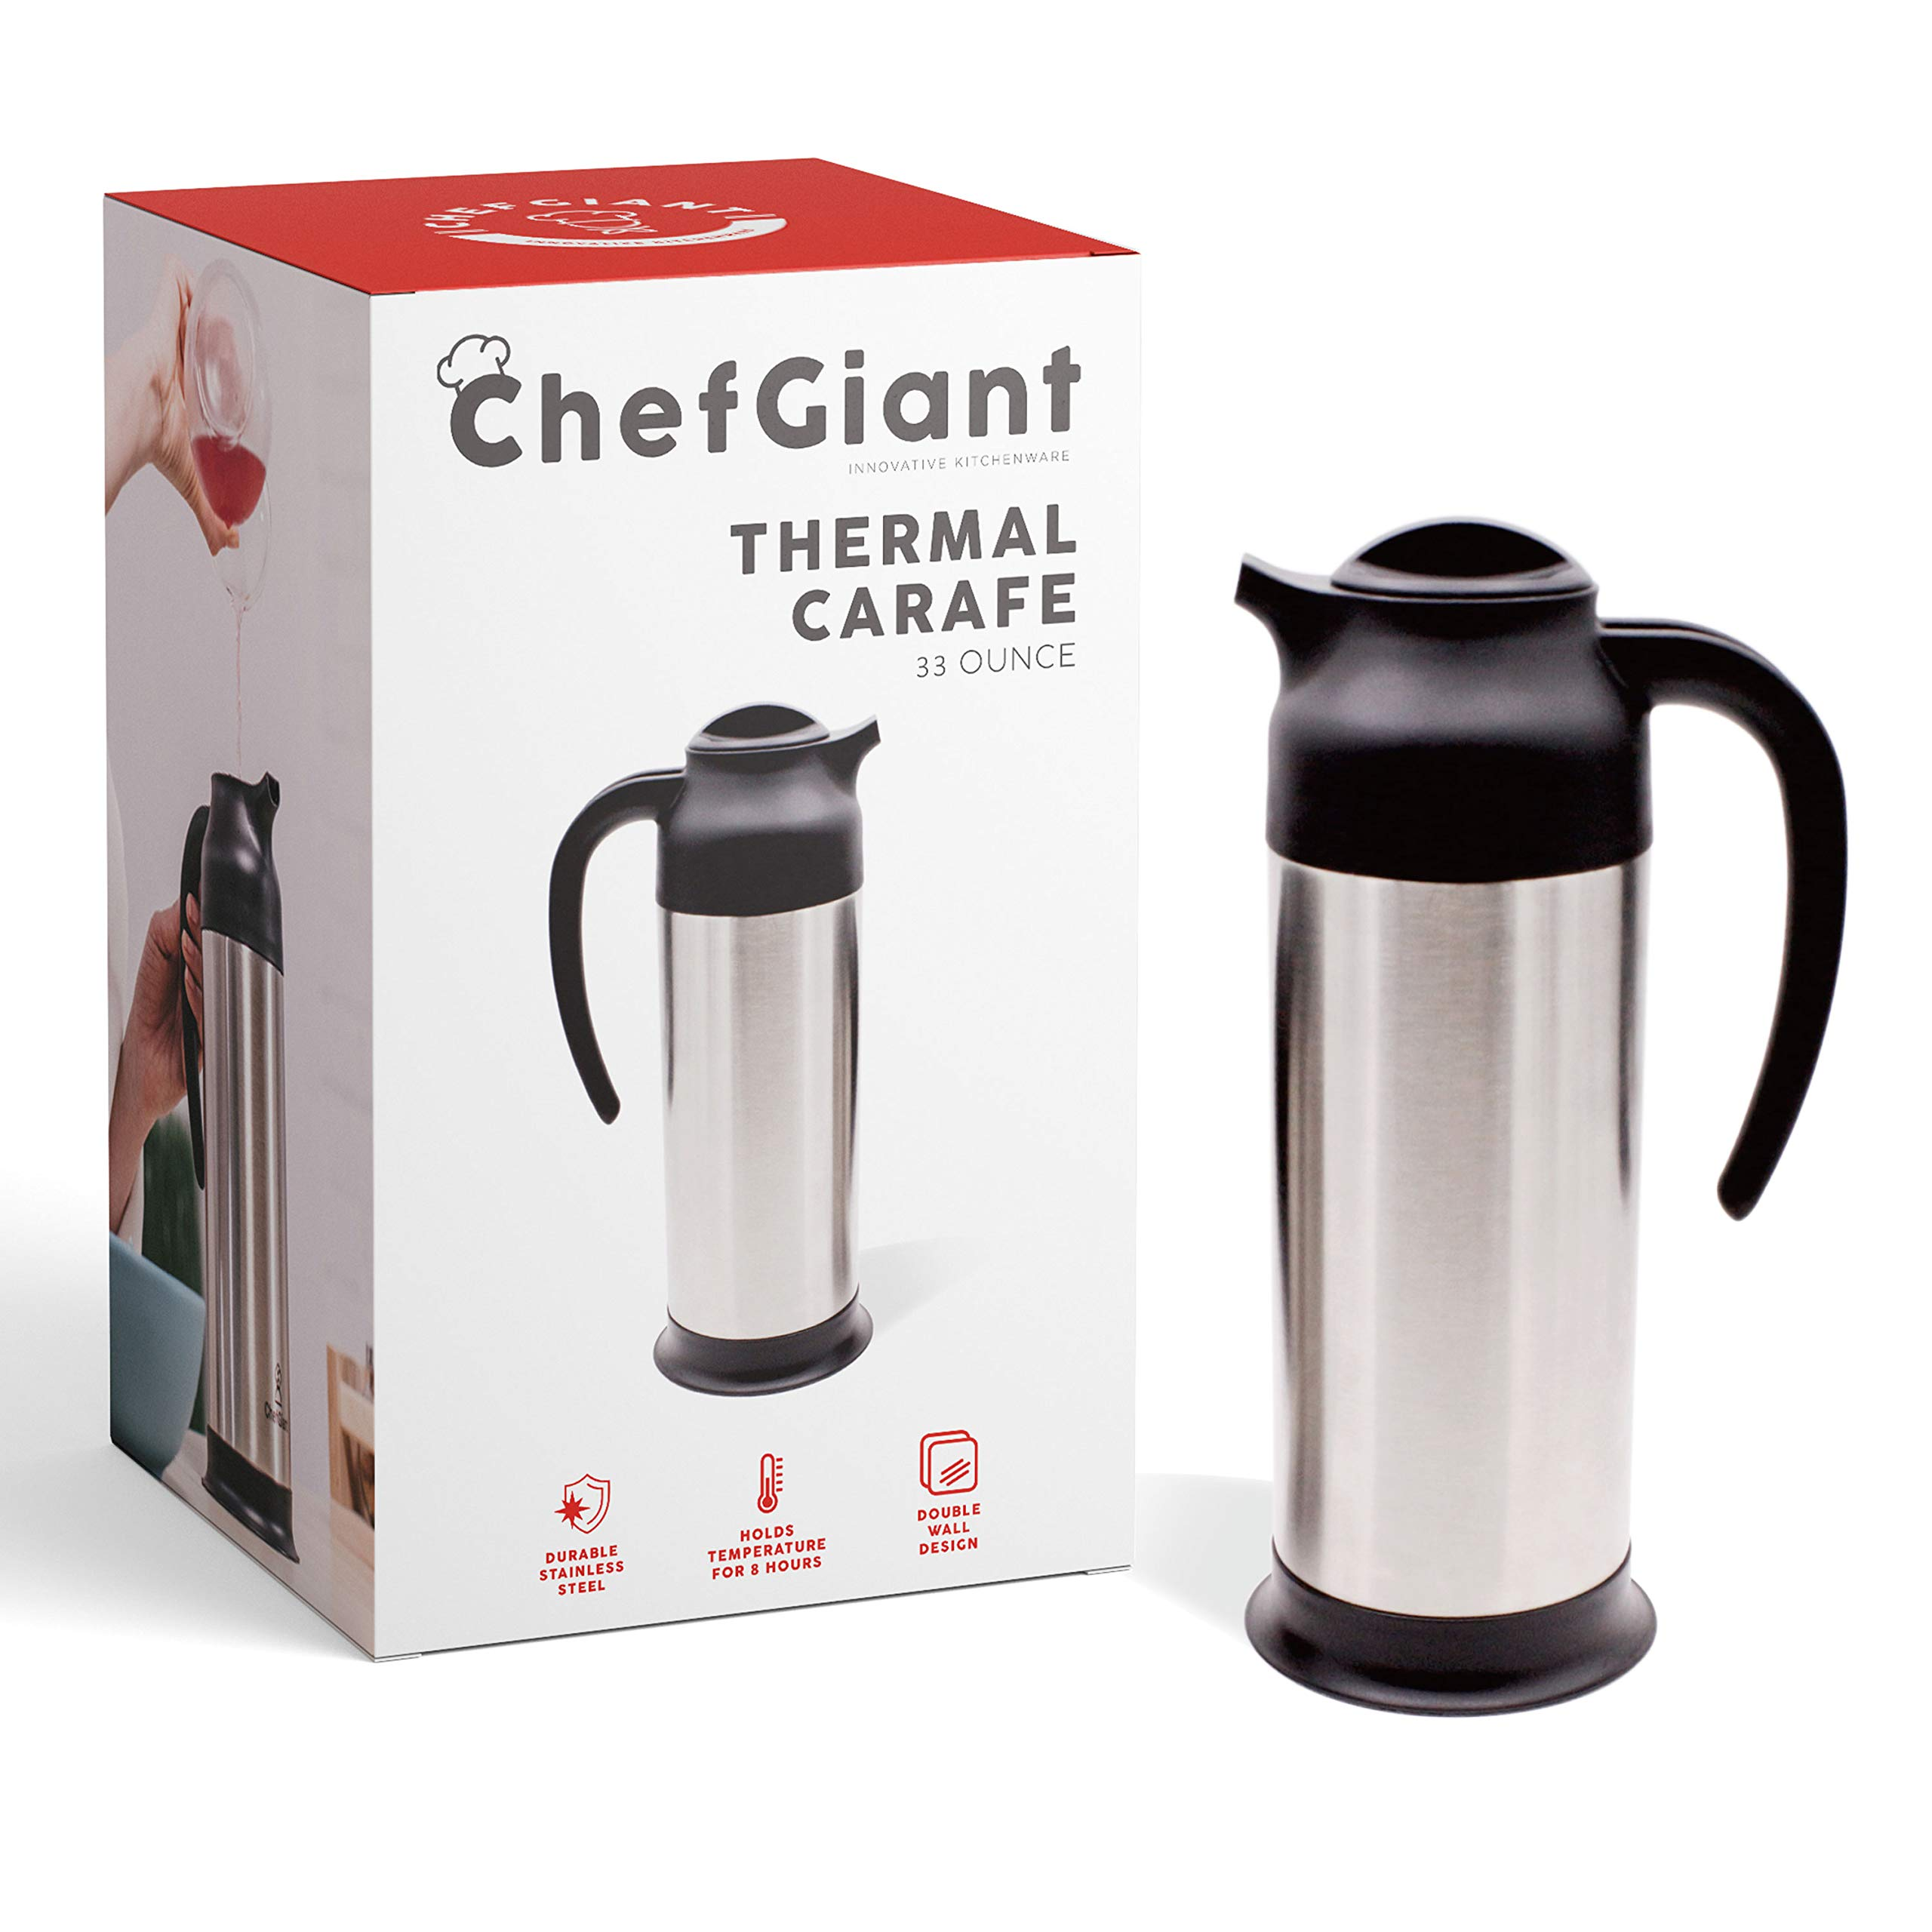 Thermal Coffee Carafe 33 OZ. 1 Liter 4 CUP Premium Small Design for Easy Handle & Travel Milk Server Stainless Steel Insulated Hot & Cold Beverage Pitcher Dispenser by ChefGiant